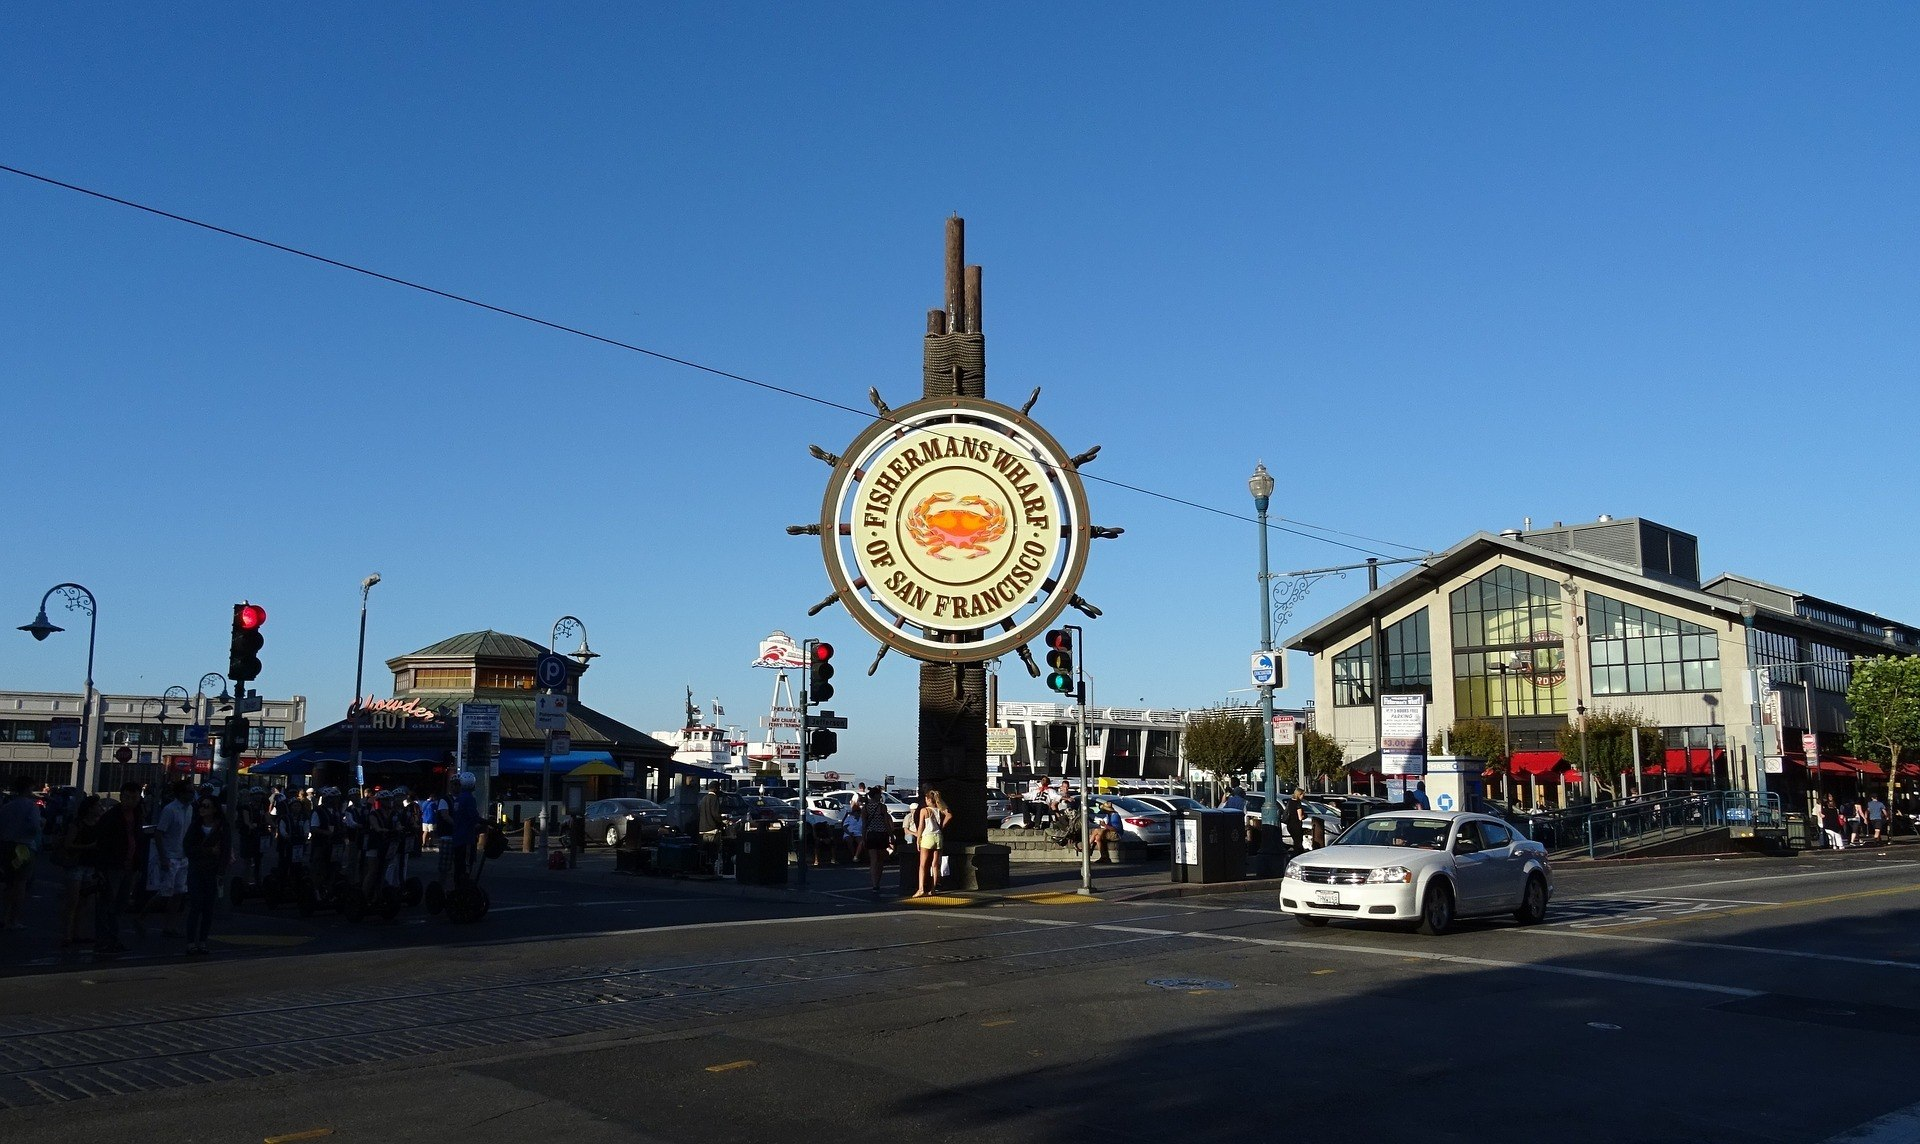 Fisherman's Wharf - Best Place to Stay With Family in San Francisco